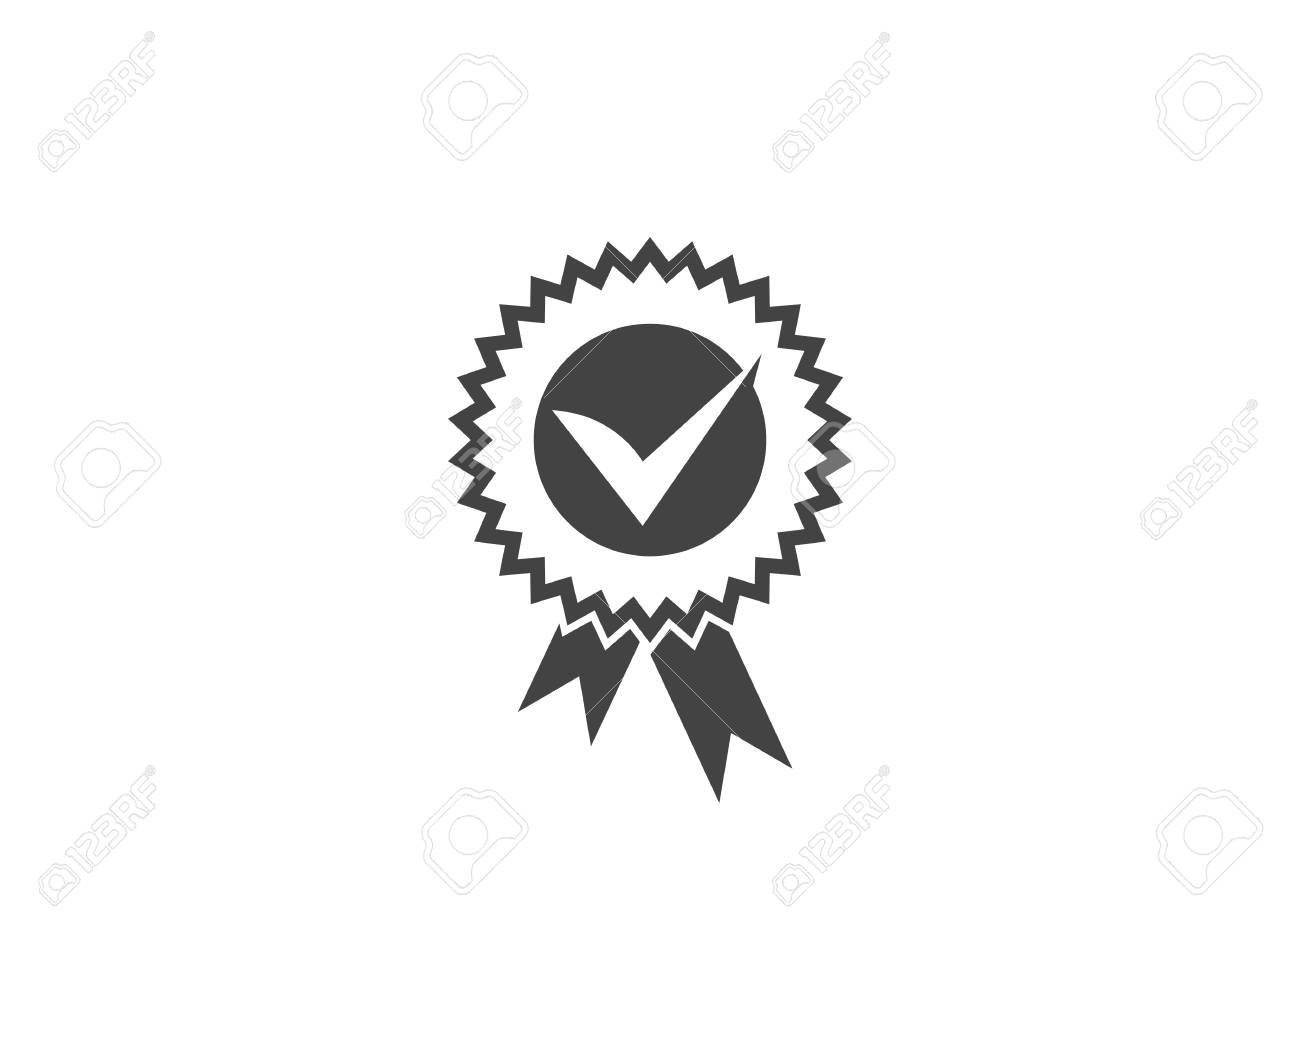 Approved or Certified Medal Icon illustration design - 100266334